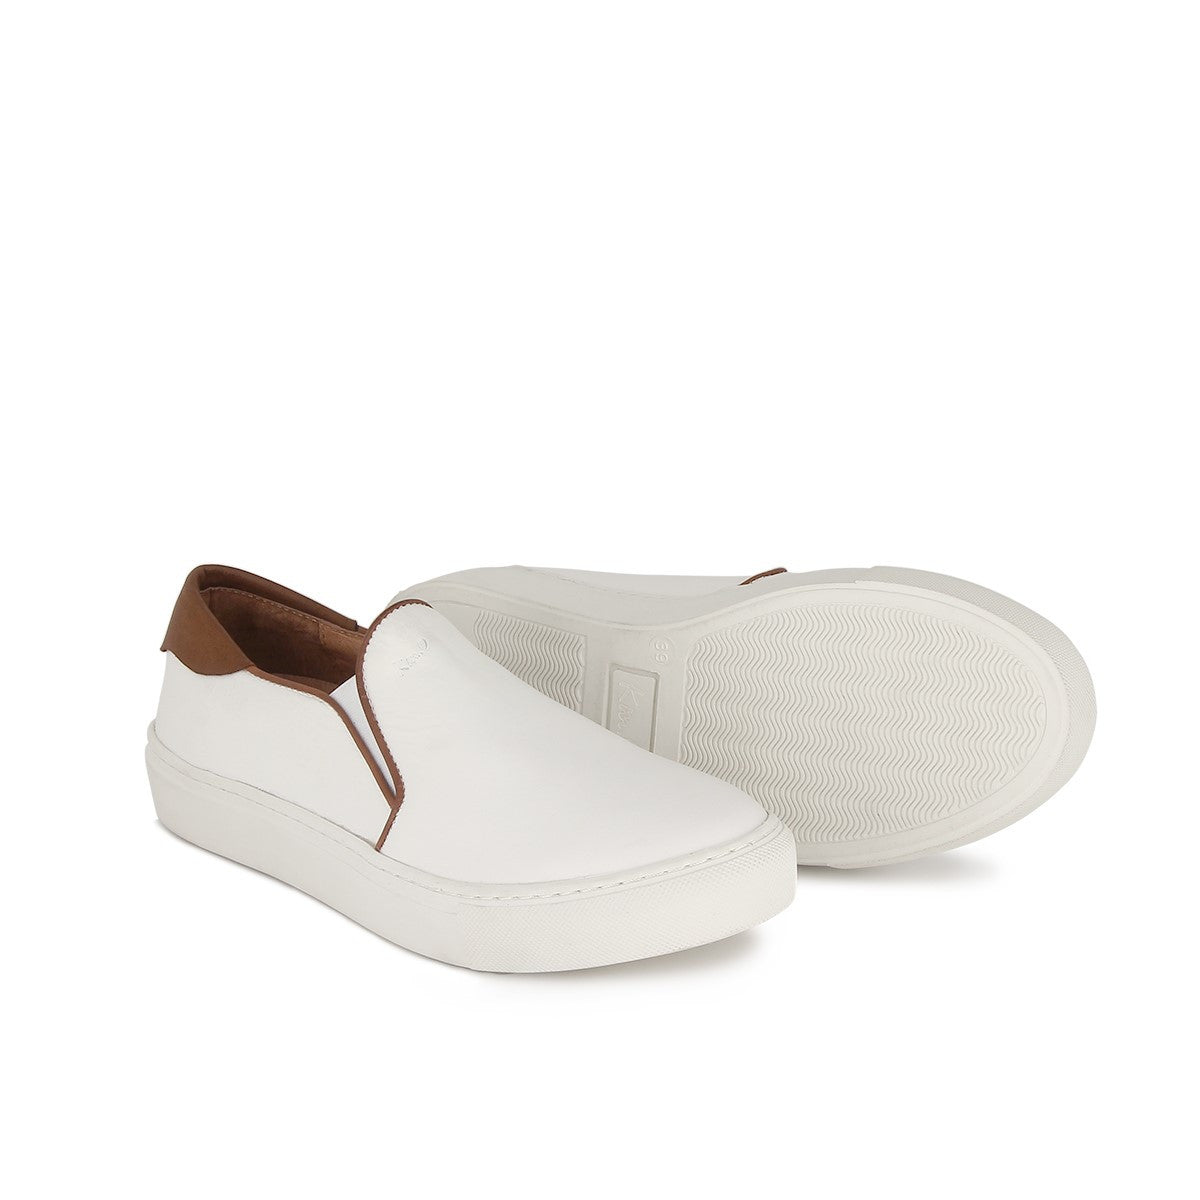 Baskets homme slip-on cuir EPURE